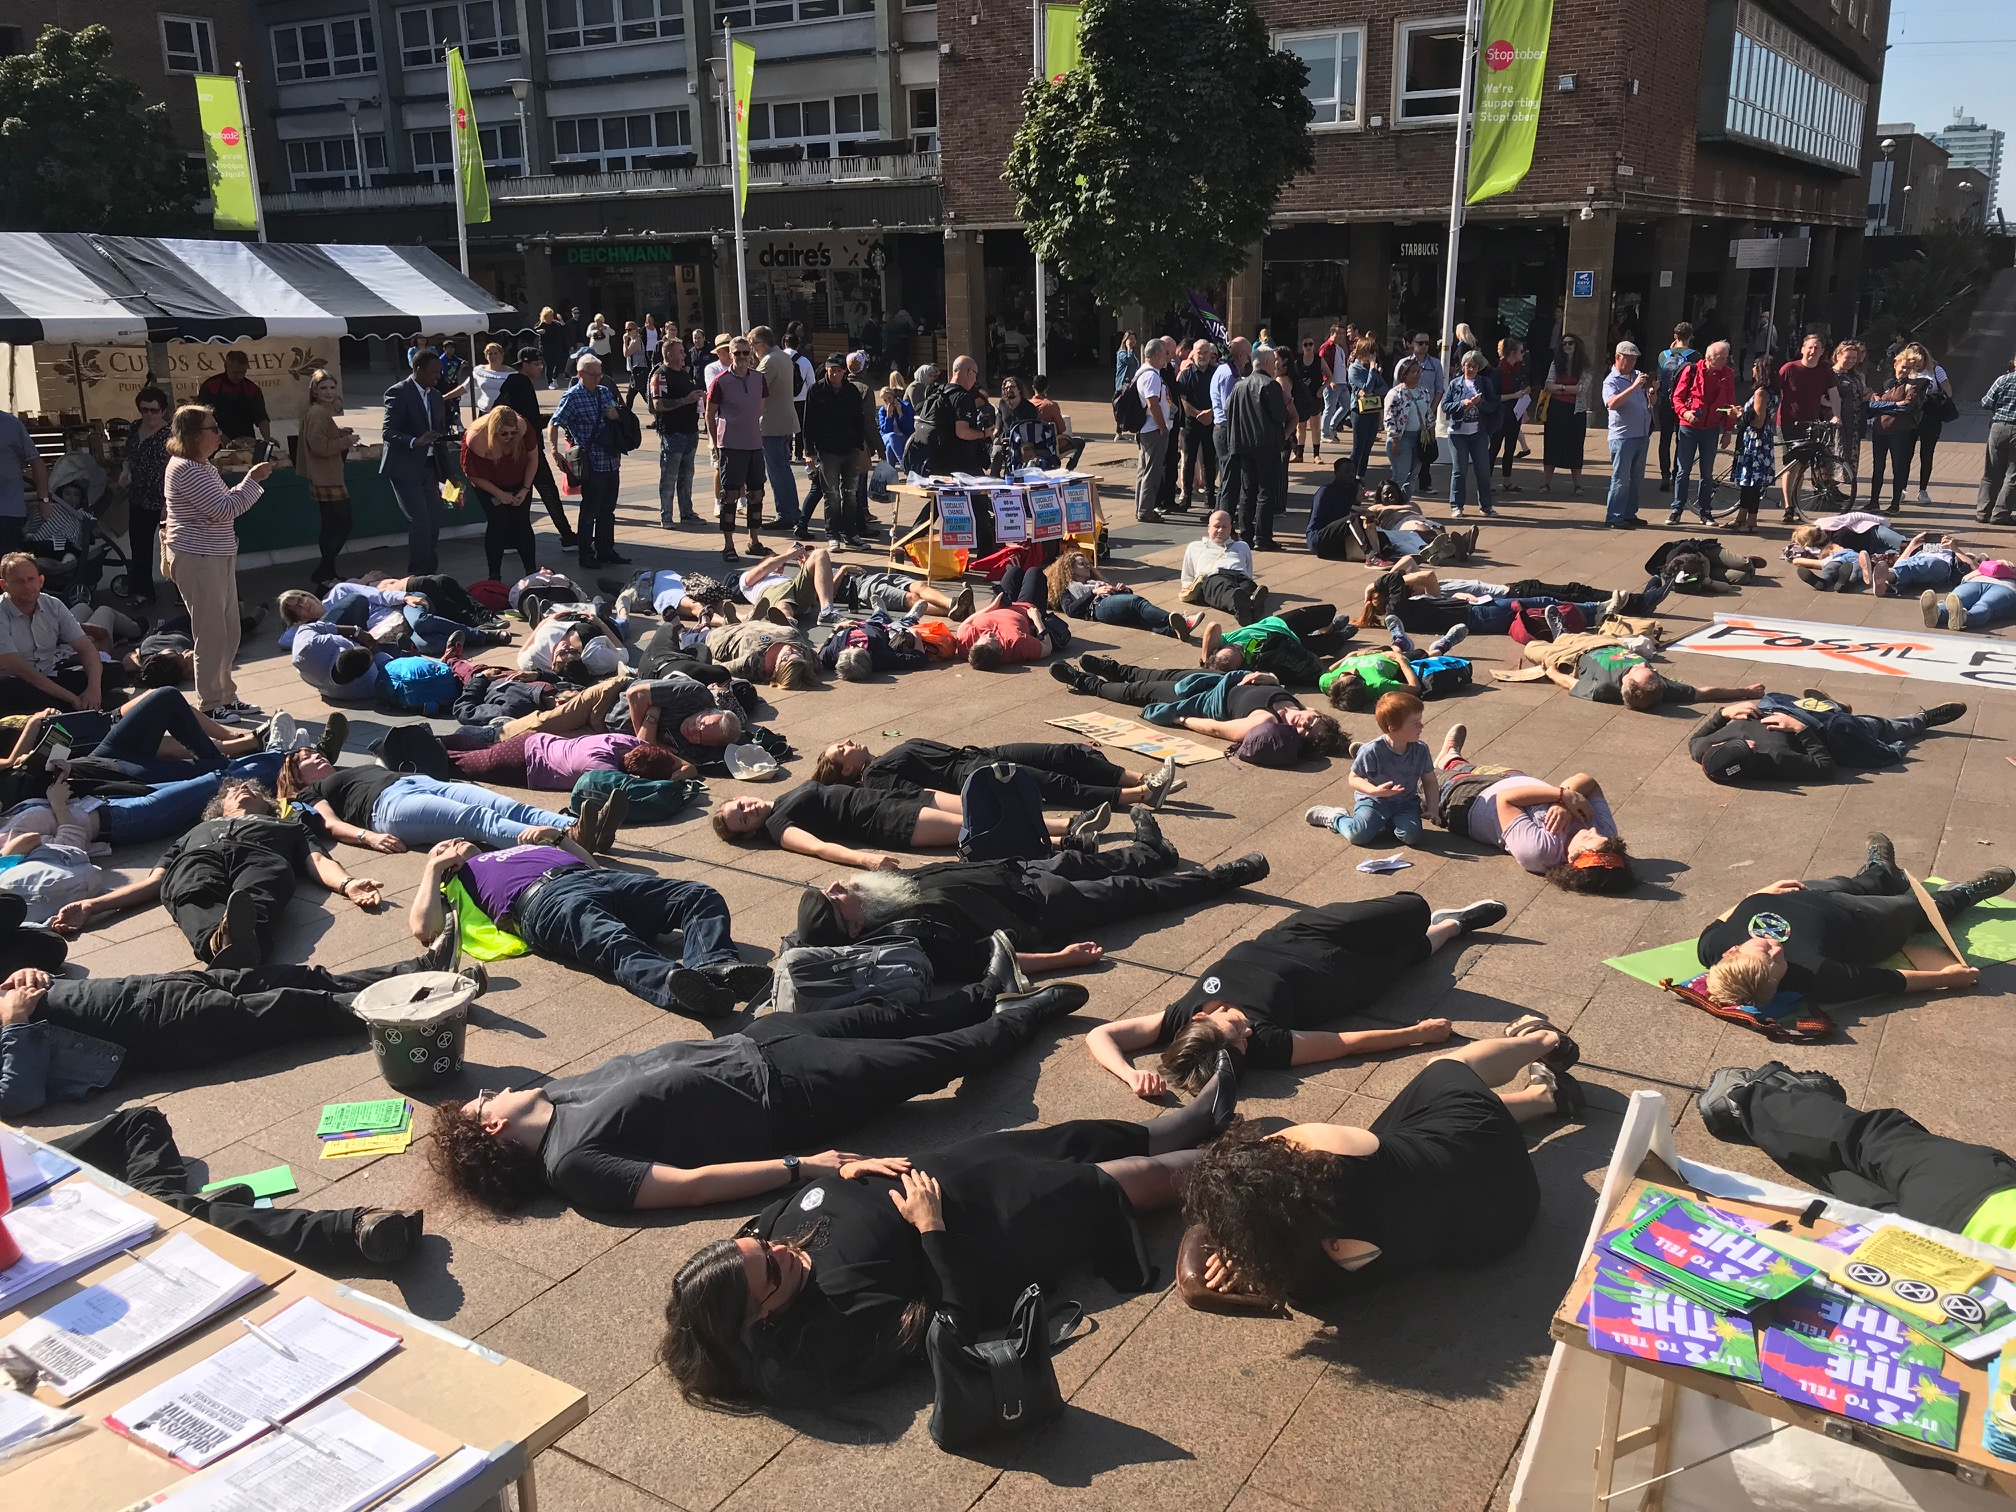 Climate change protesters in 'die-in'